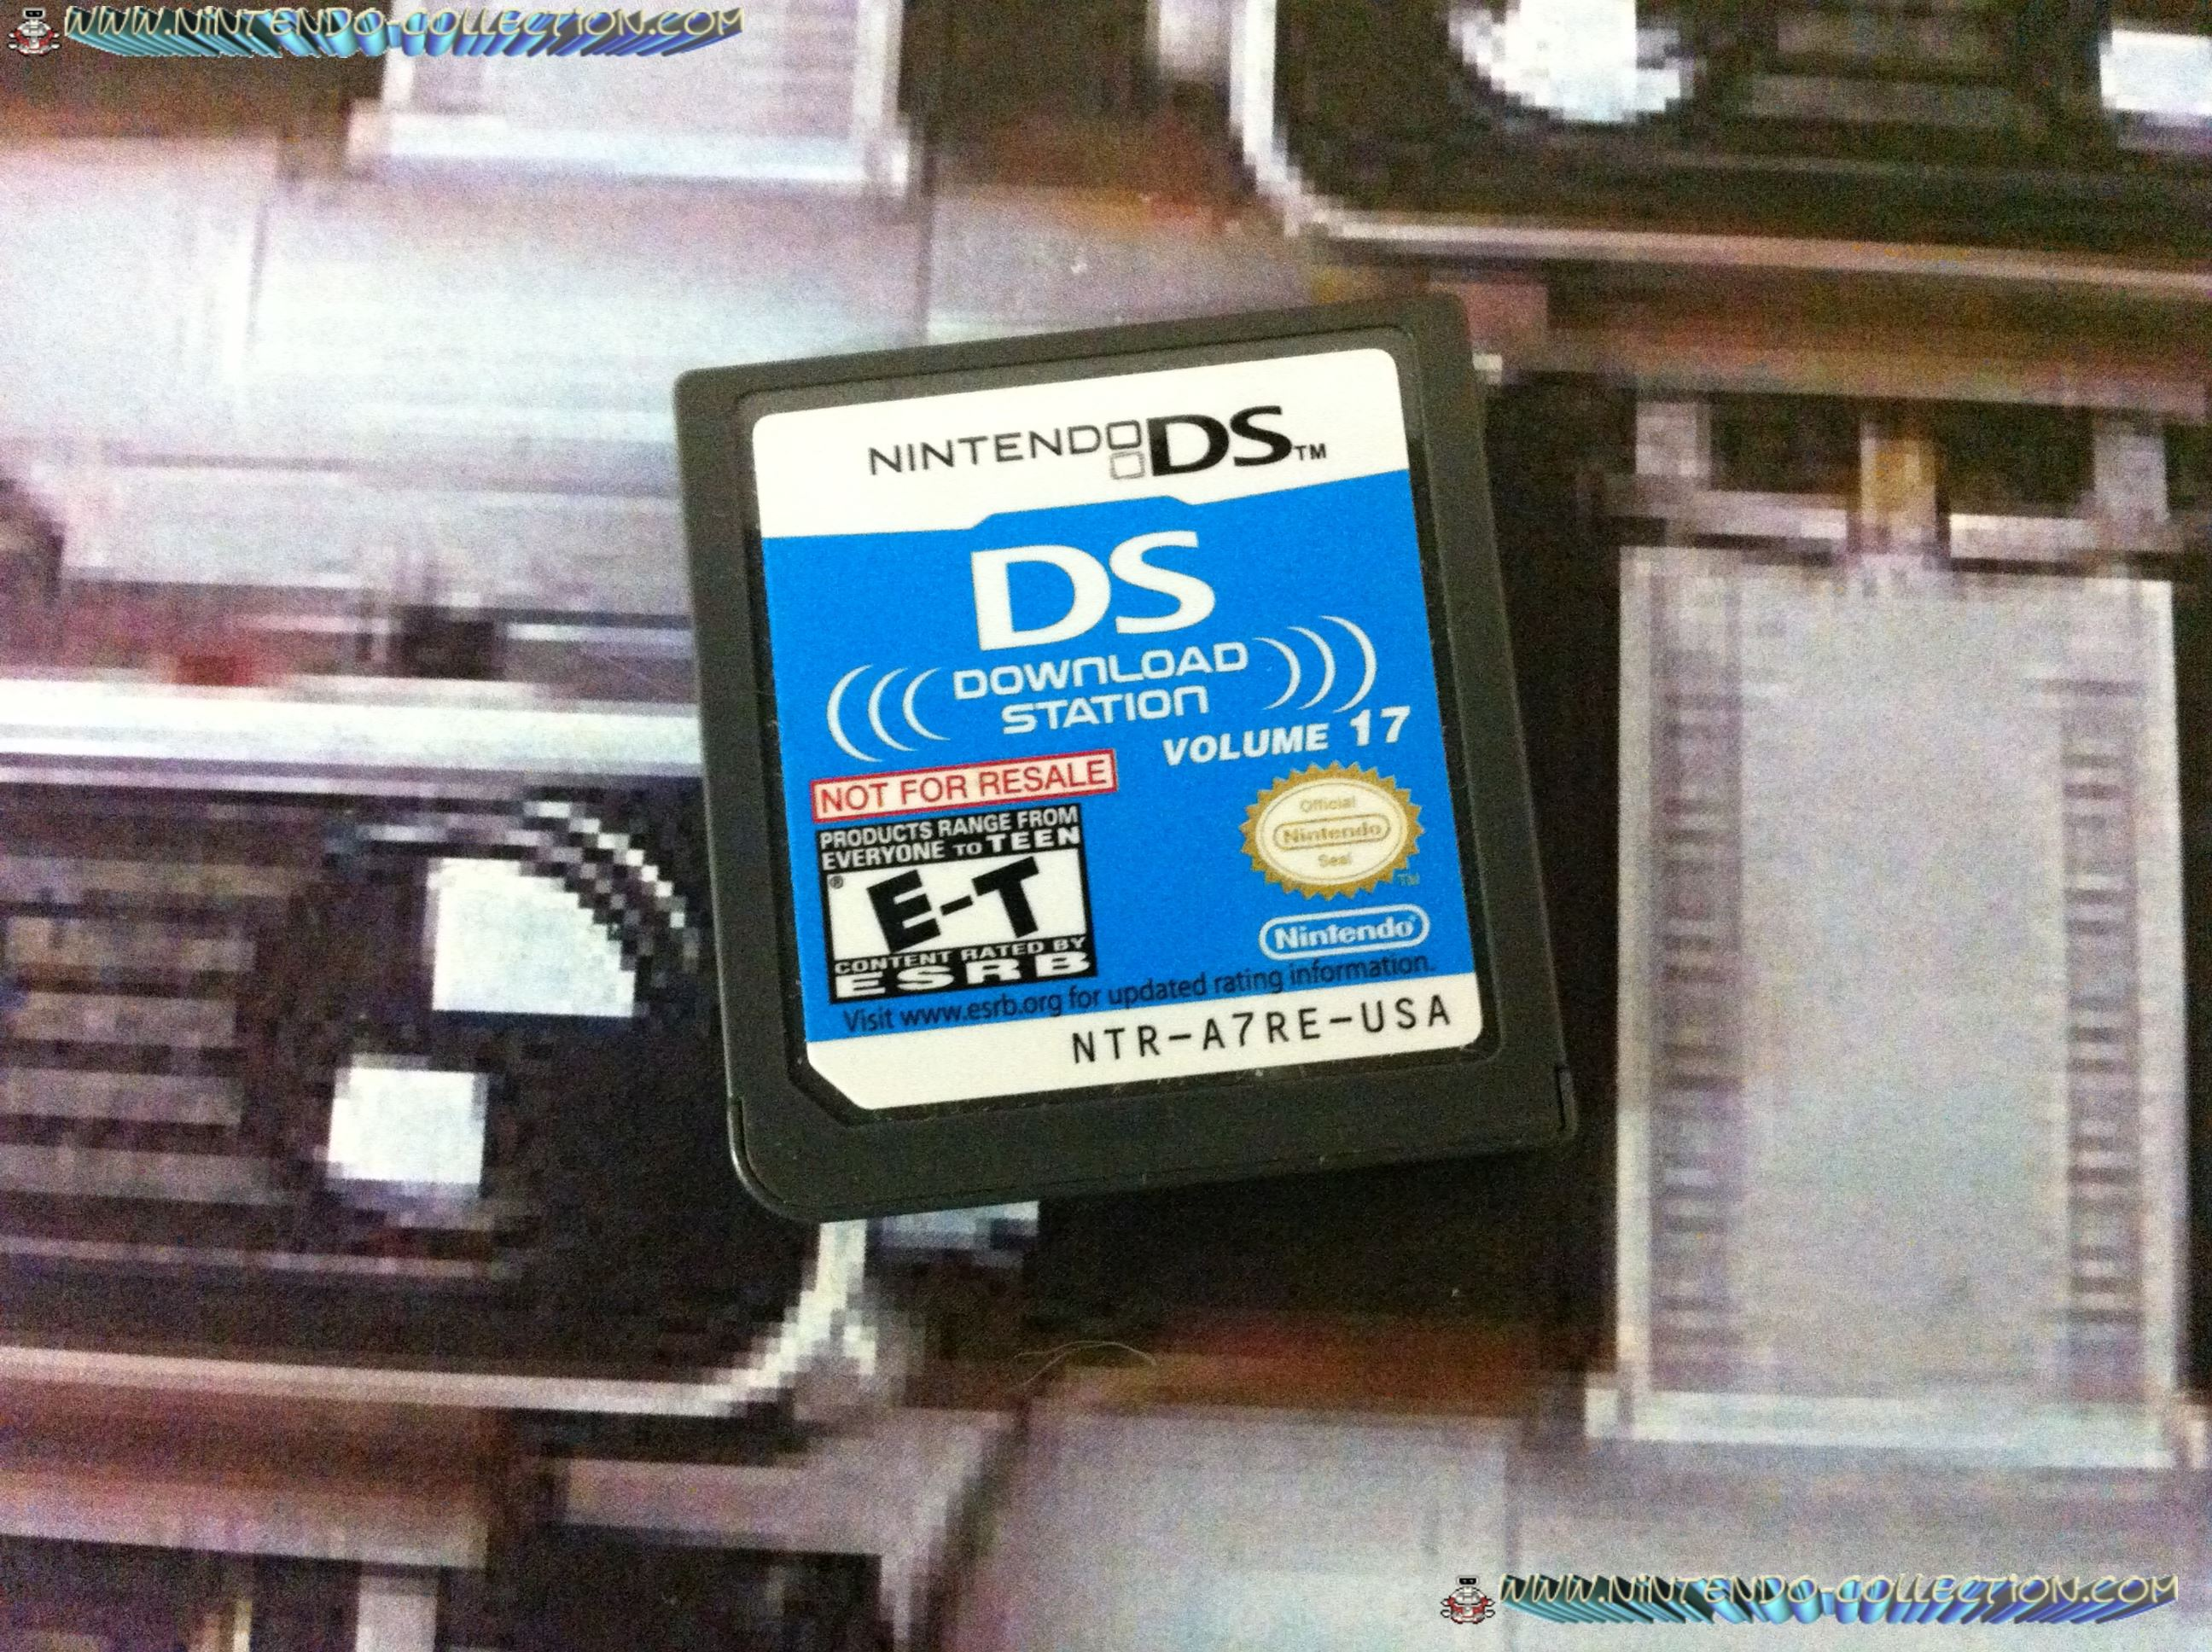 www.nintendo-collection.com - Demo DS 3 DS - Not For Resale - US Download Station Volume 17